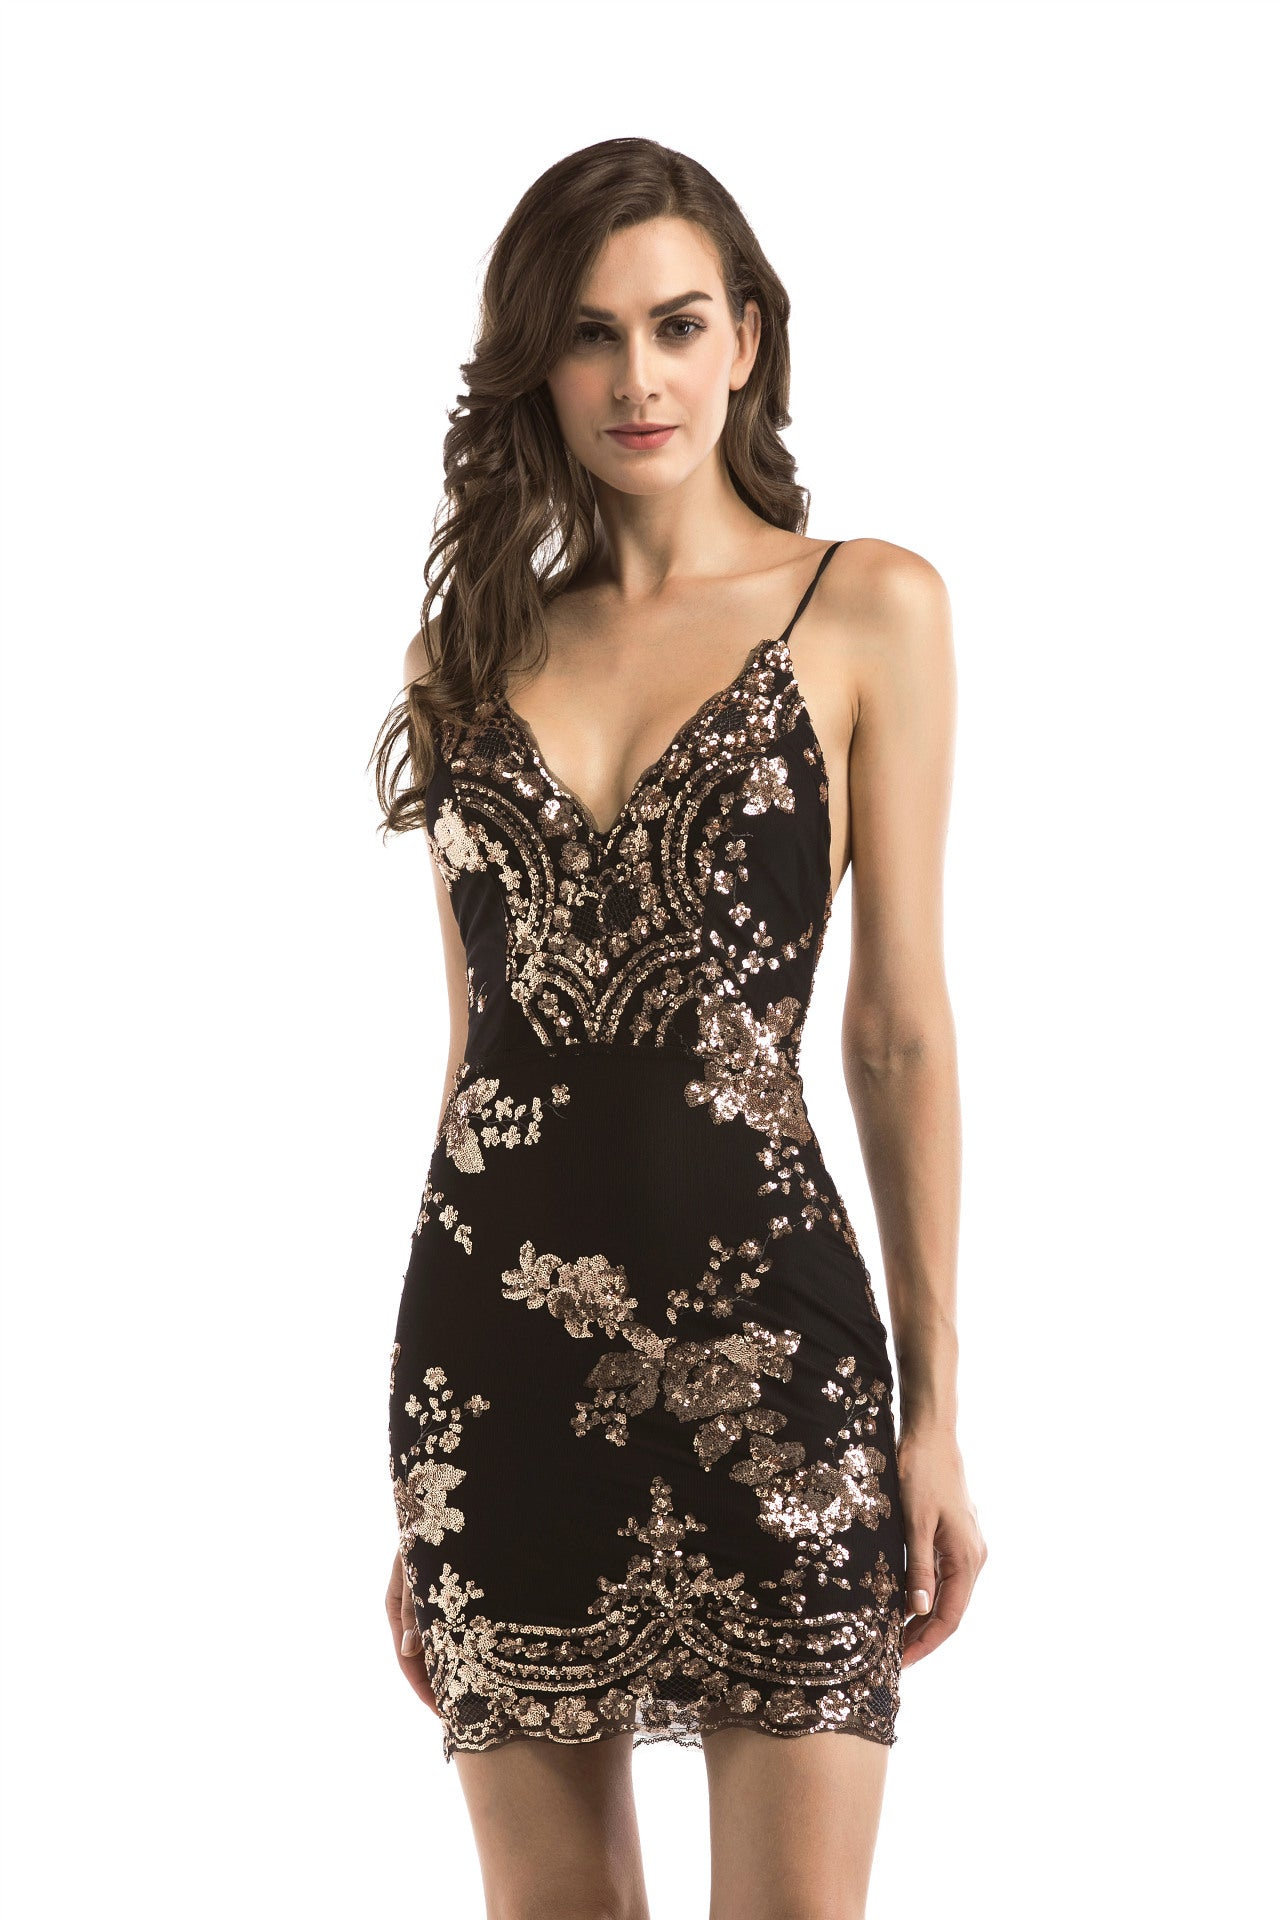 Her Fashion Black Spaghetti Strap Backless Sequins Slim Party Dress